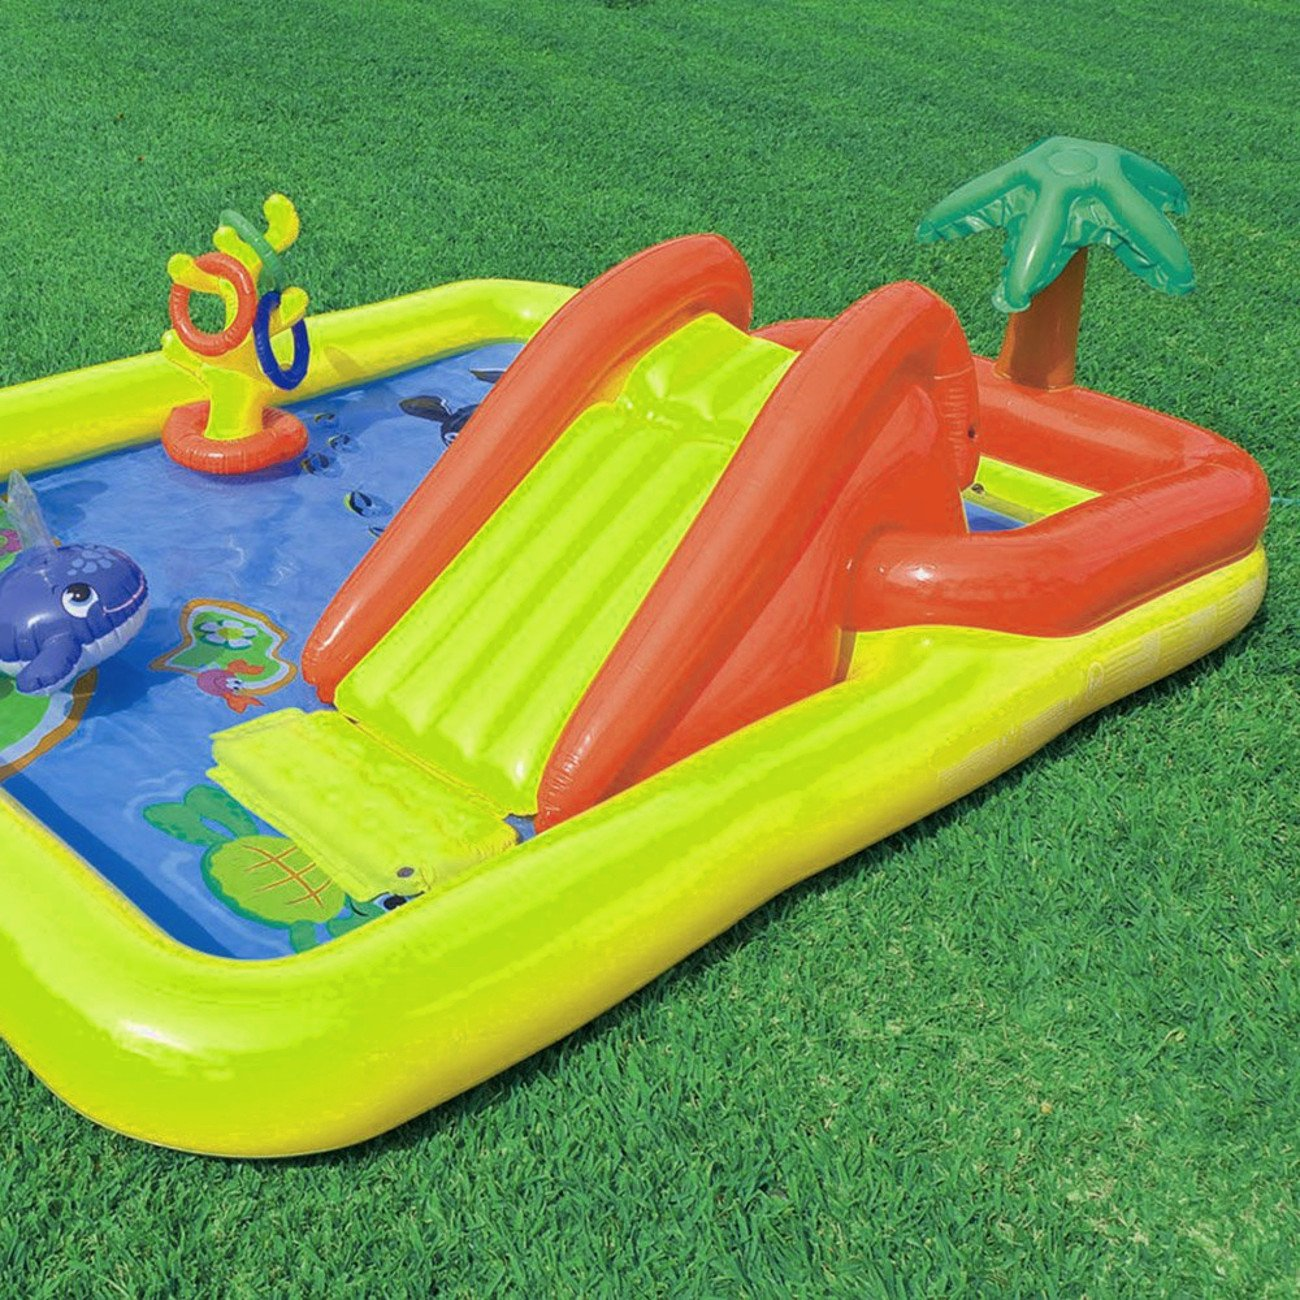 Inflatable Swim Platform, Ring Toss Game, Built-In Sprayer, Durable And High Resistant Construction, Lightweight, An Attractive And Modern Design, Multi Color, Easy Setup, Endless Fun & E-Book.